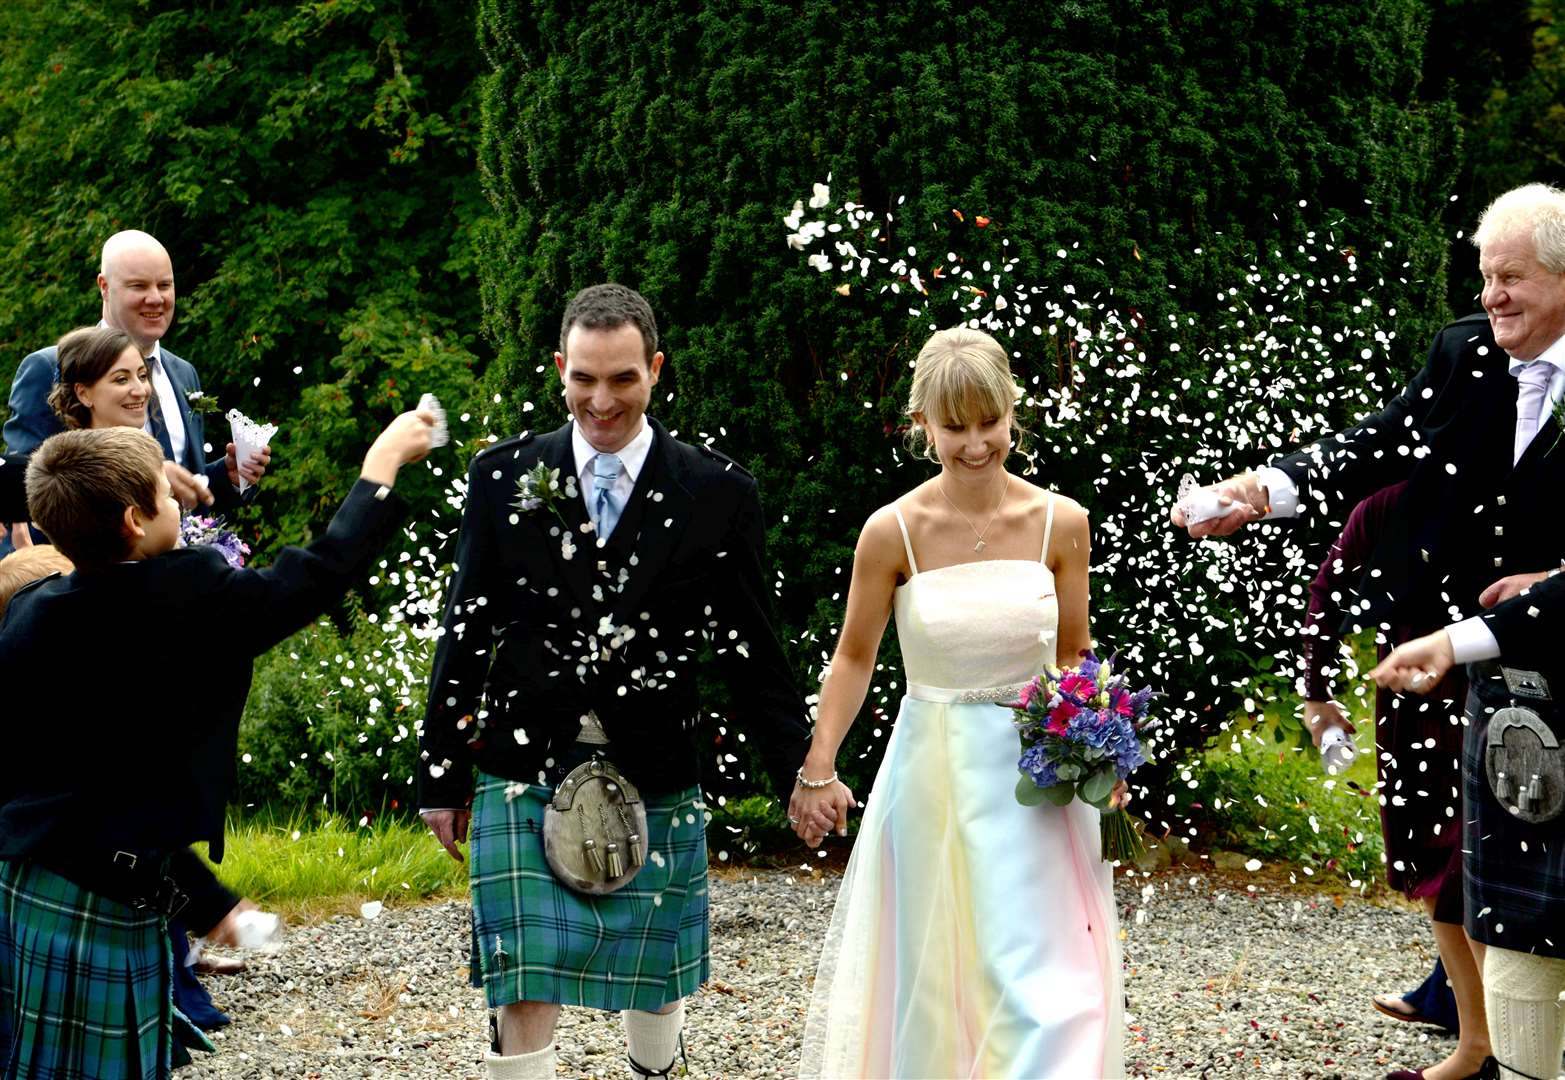 Ashley Traill wore a specially designed rainbow dress for her big day.